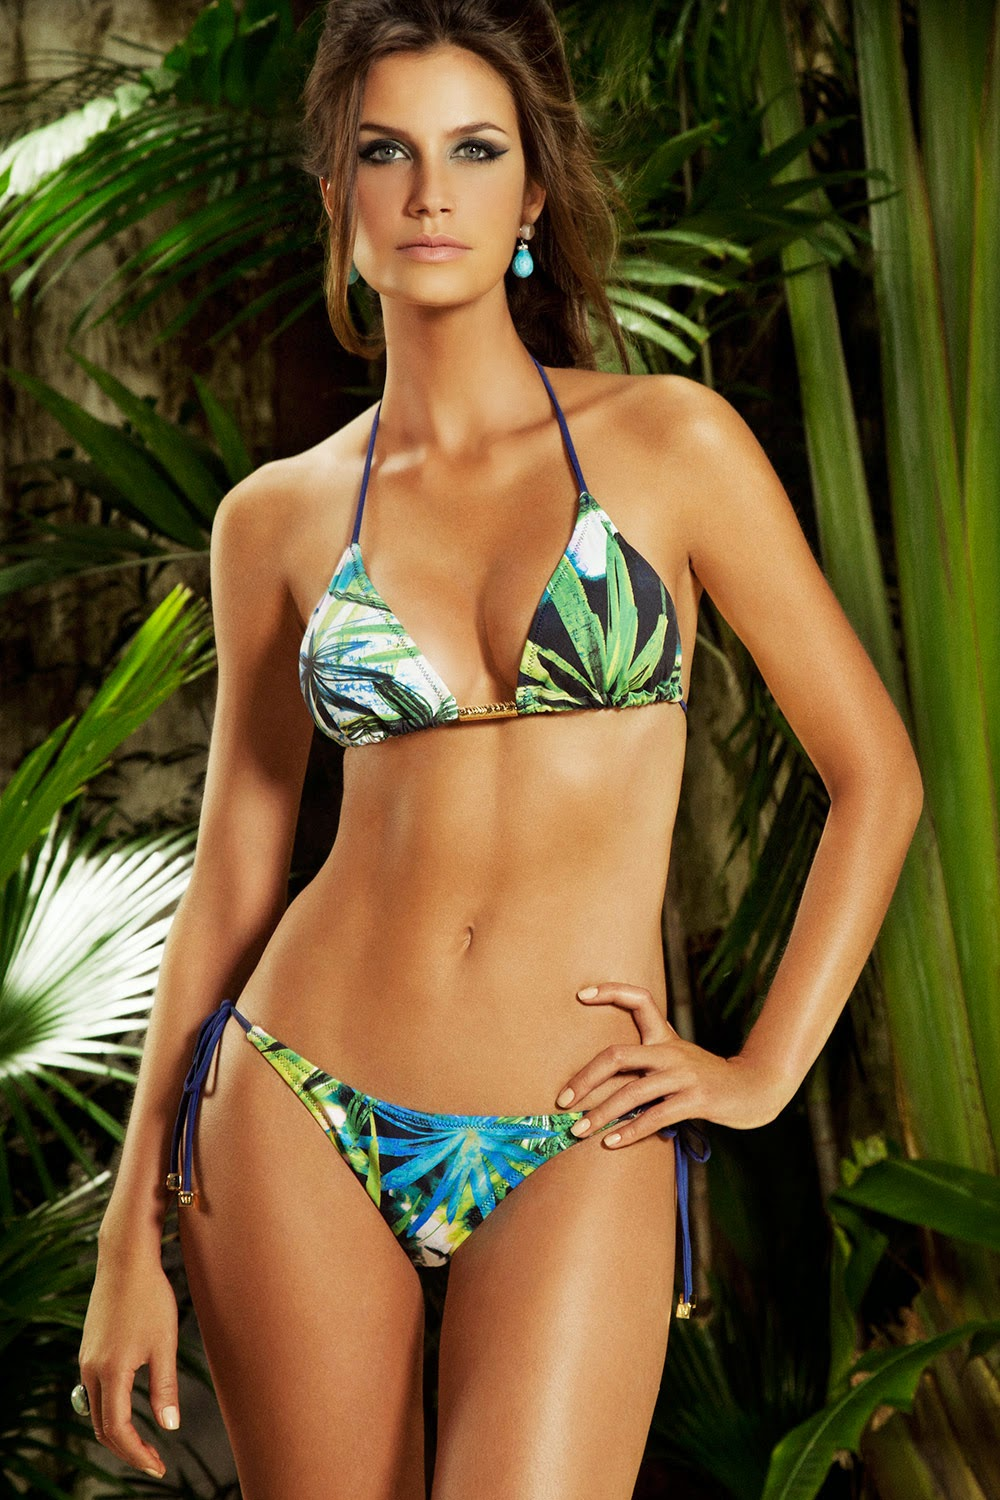 c27bfef968d61 Bikinis. Stylight offer some of the most fashionable bikinis on the market  from a wide